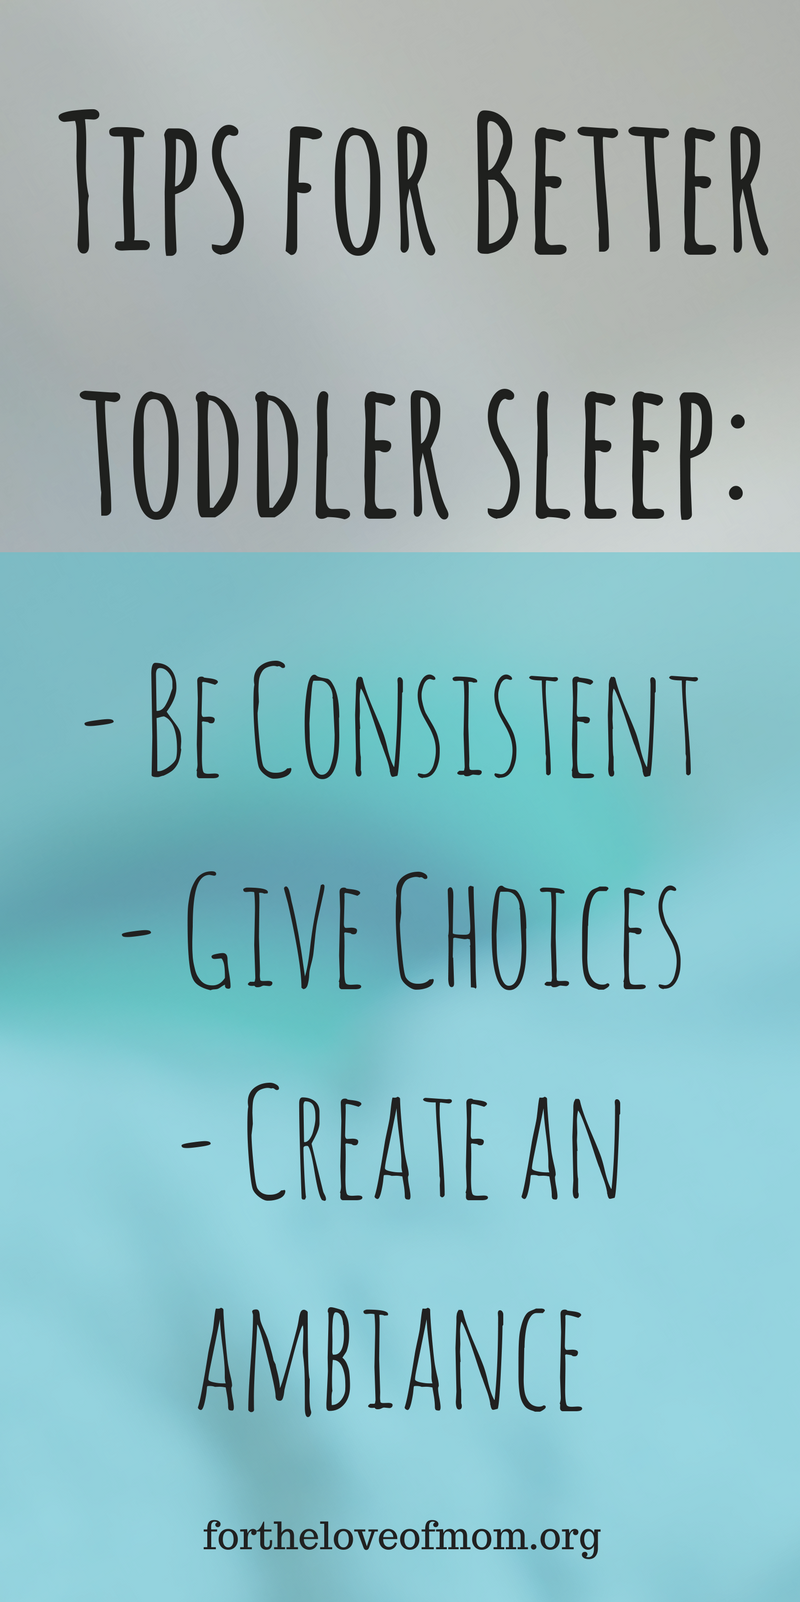 Tips for Improved Toddler Sleep | How to Get Your Toddler To Sleep | Why My Toddler Isn't Sleeping | How to Get Toddlers to Sleep Better | Toddler Sleep Regression | www.fortheloveofmom.org